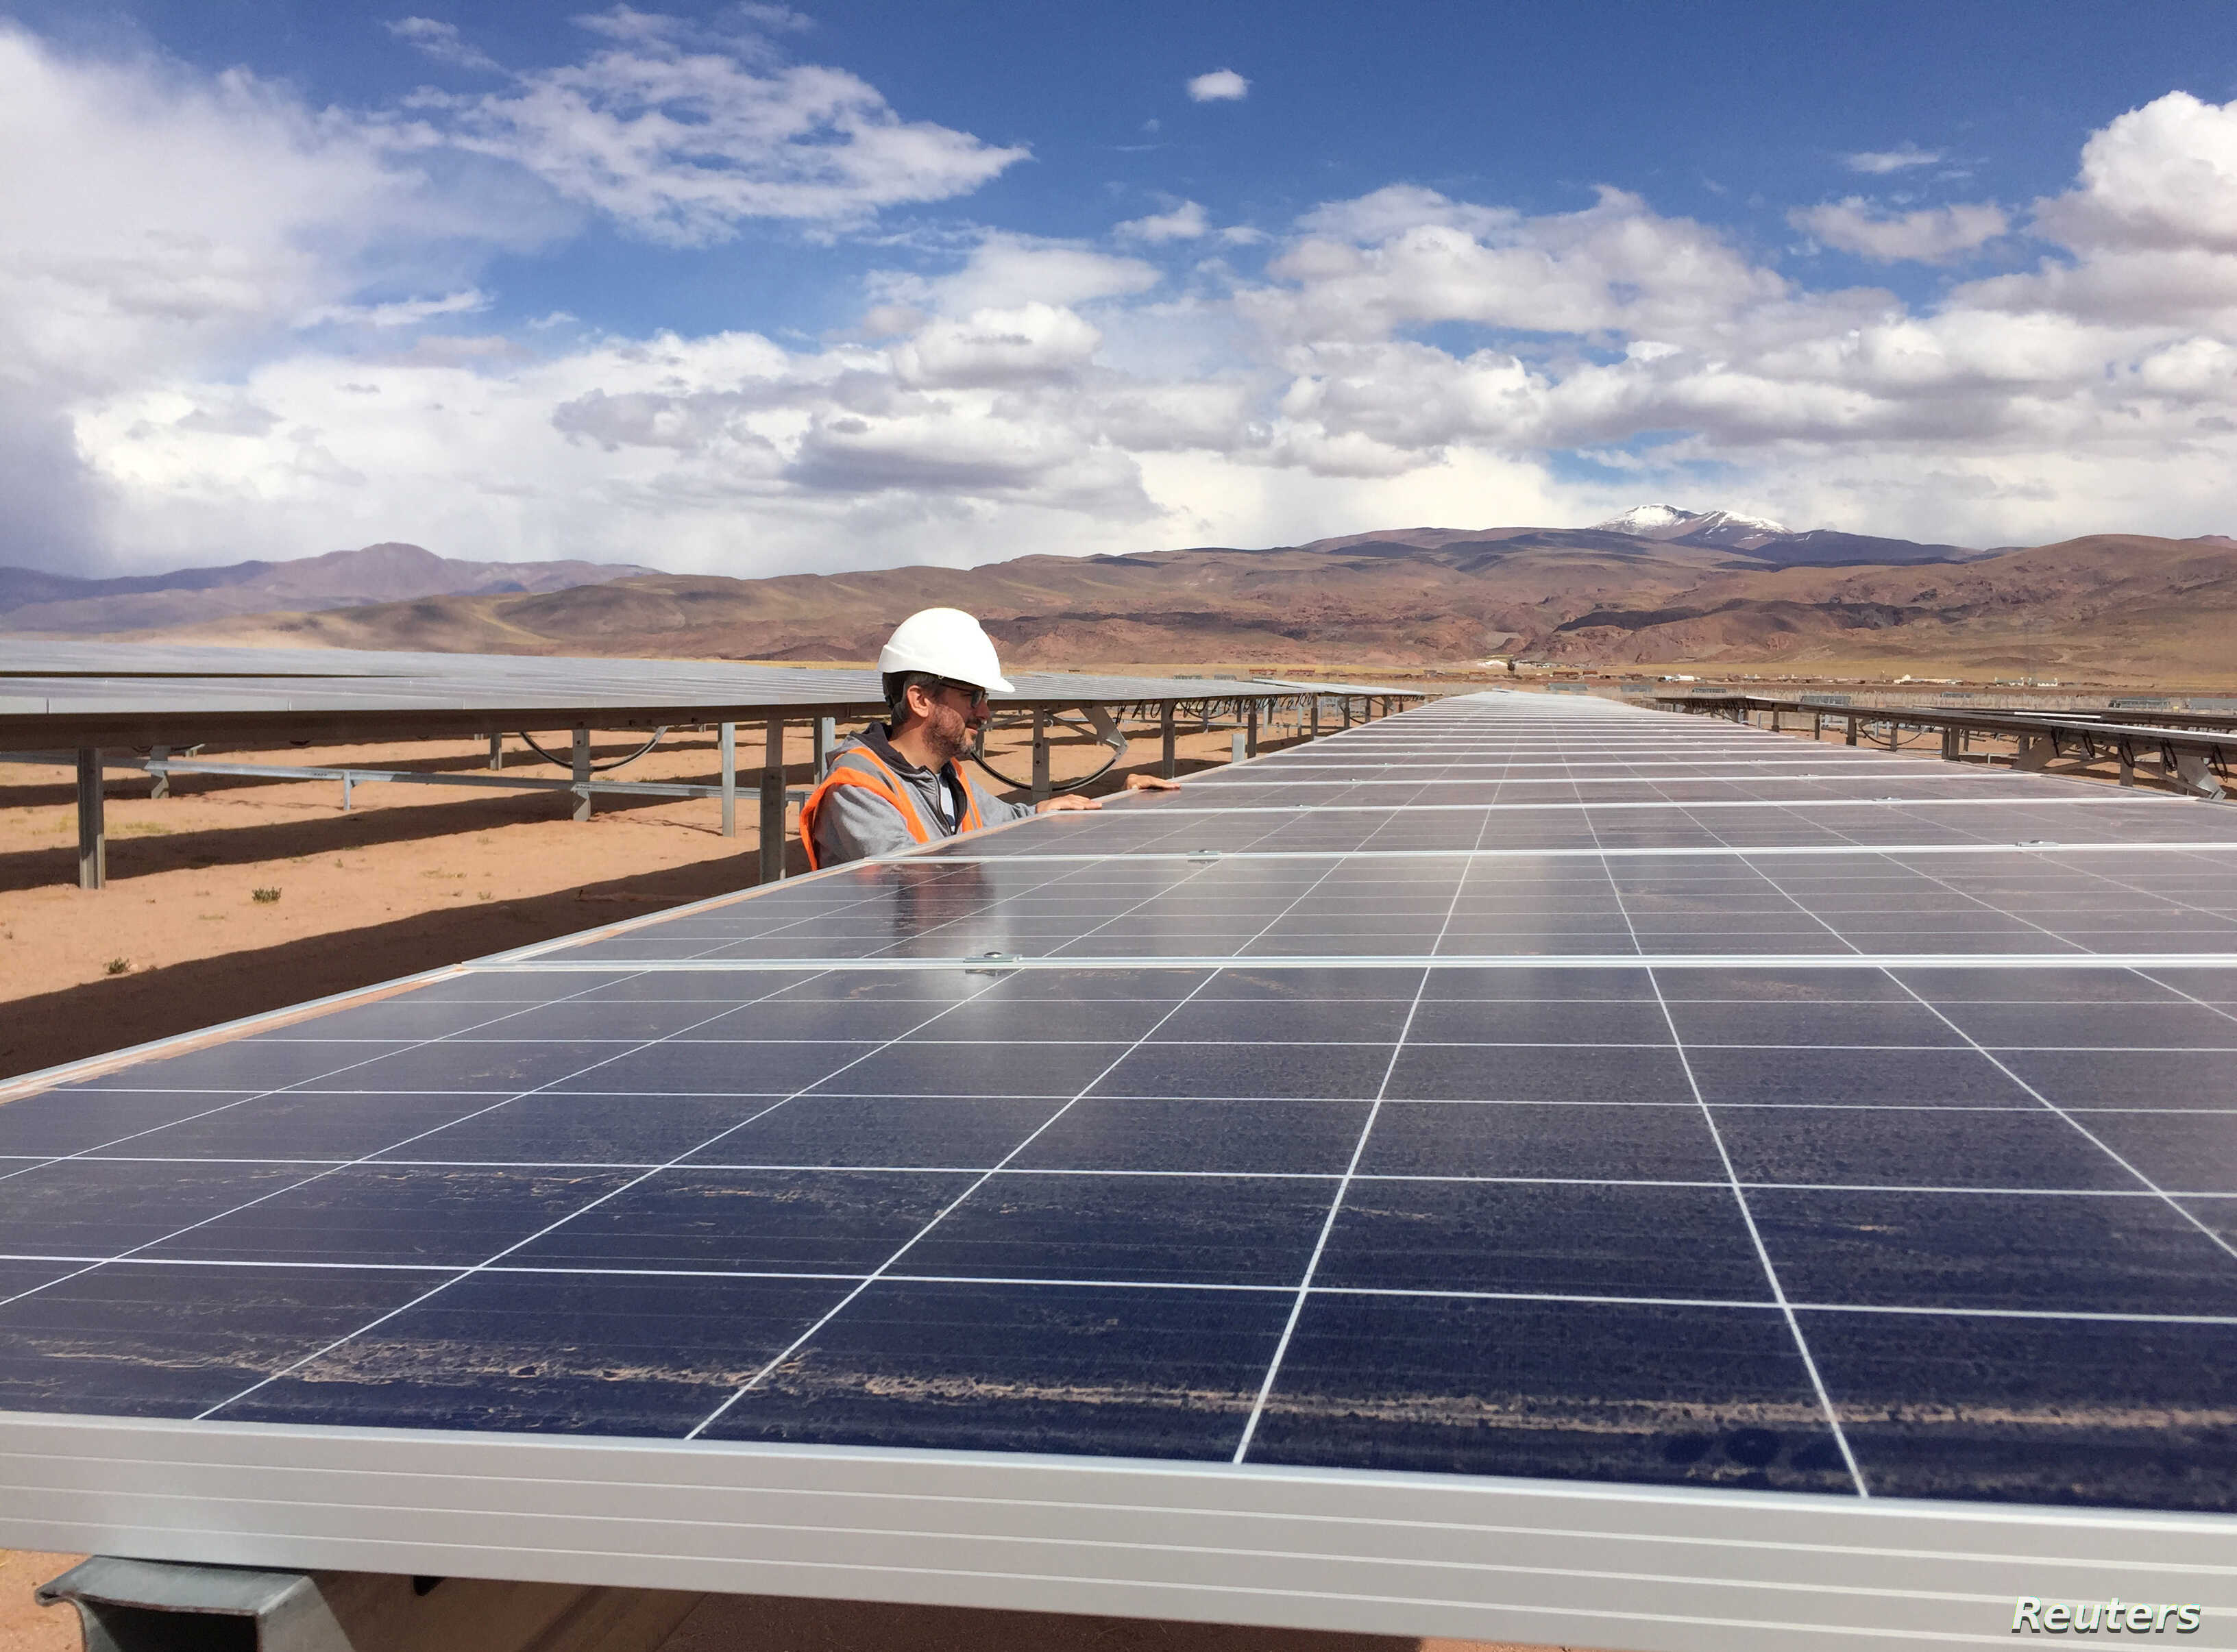 FILE - Guillermo Giralt, technical director of Cauchari Solar, stands next to solar panels at a solar farm, built on the back of funding and technology from China, in Salar de Cauchari, Argentina, April 3, 2019.